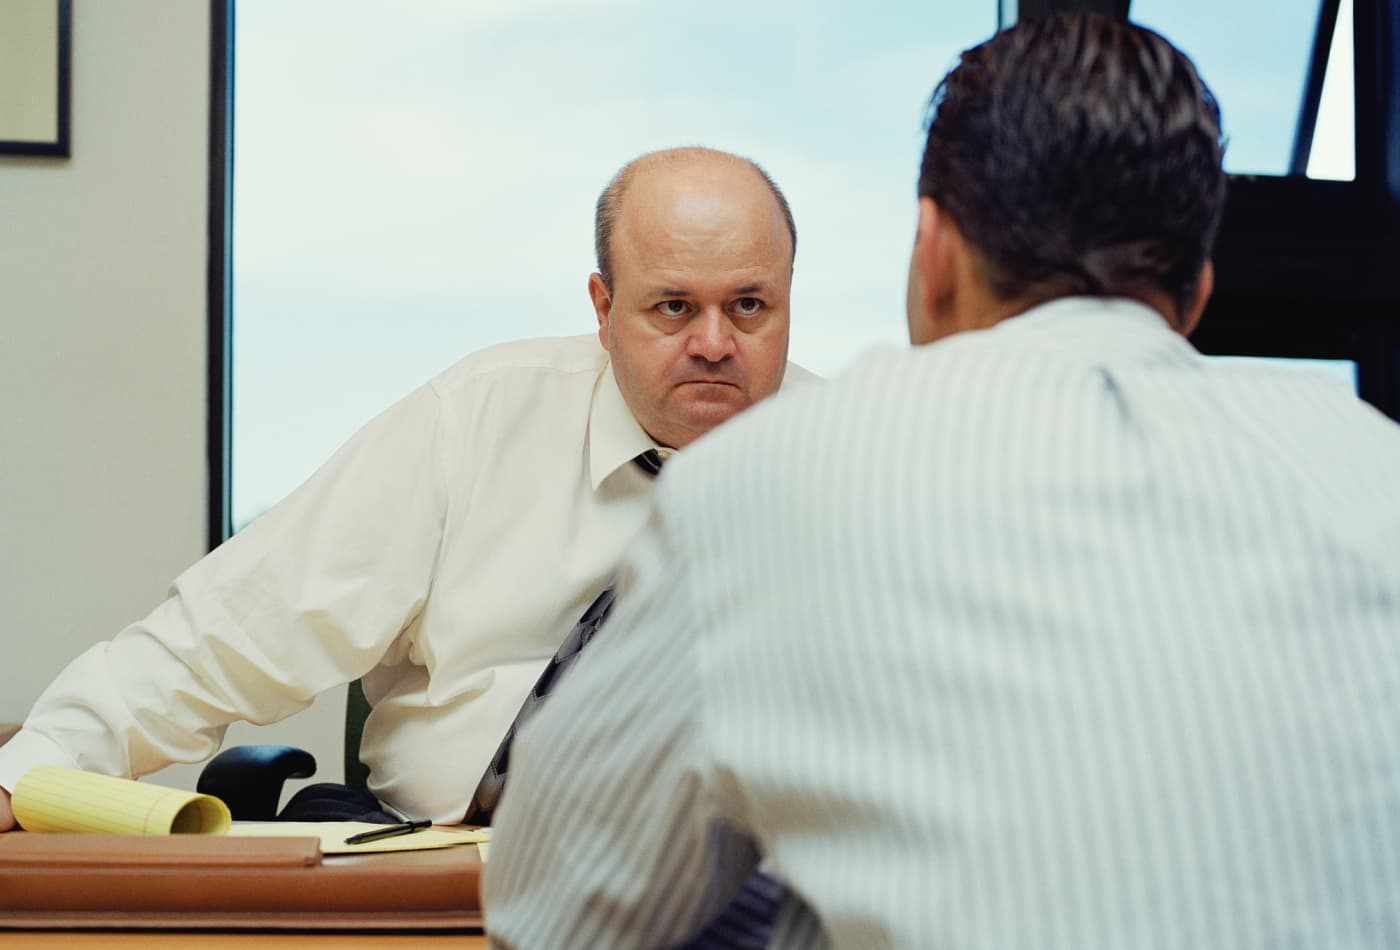 What to do if your boss bashes you in front of other employees